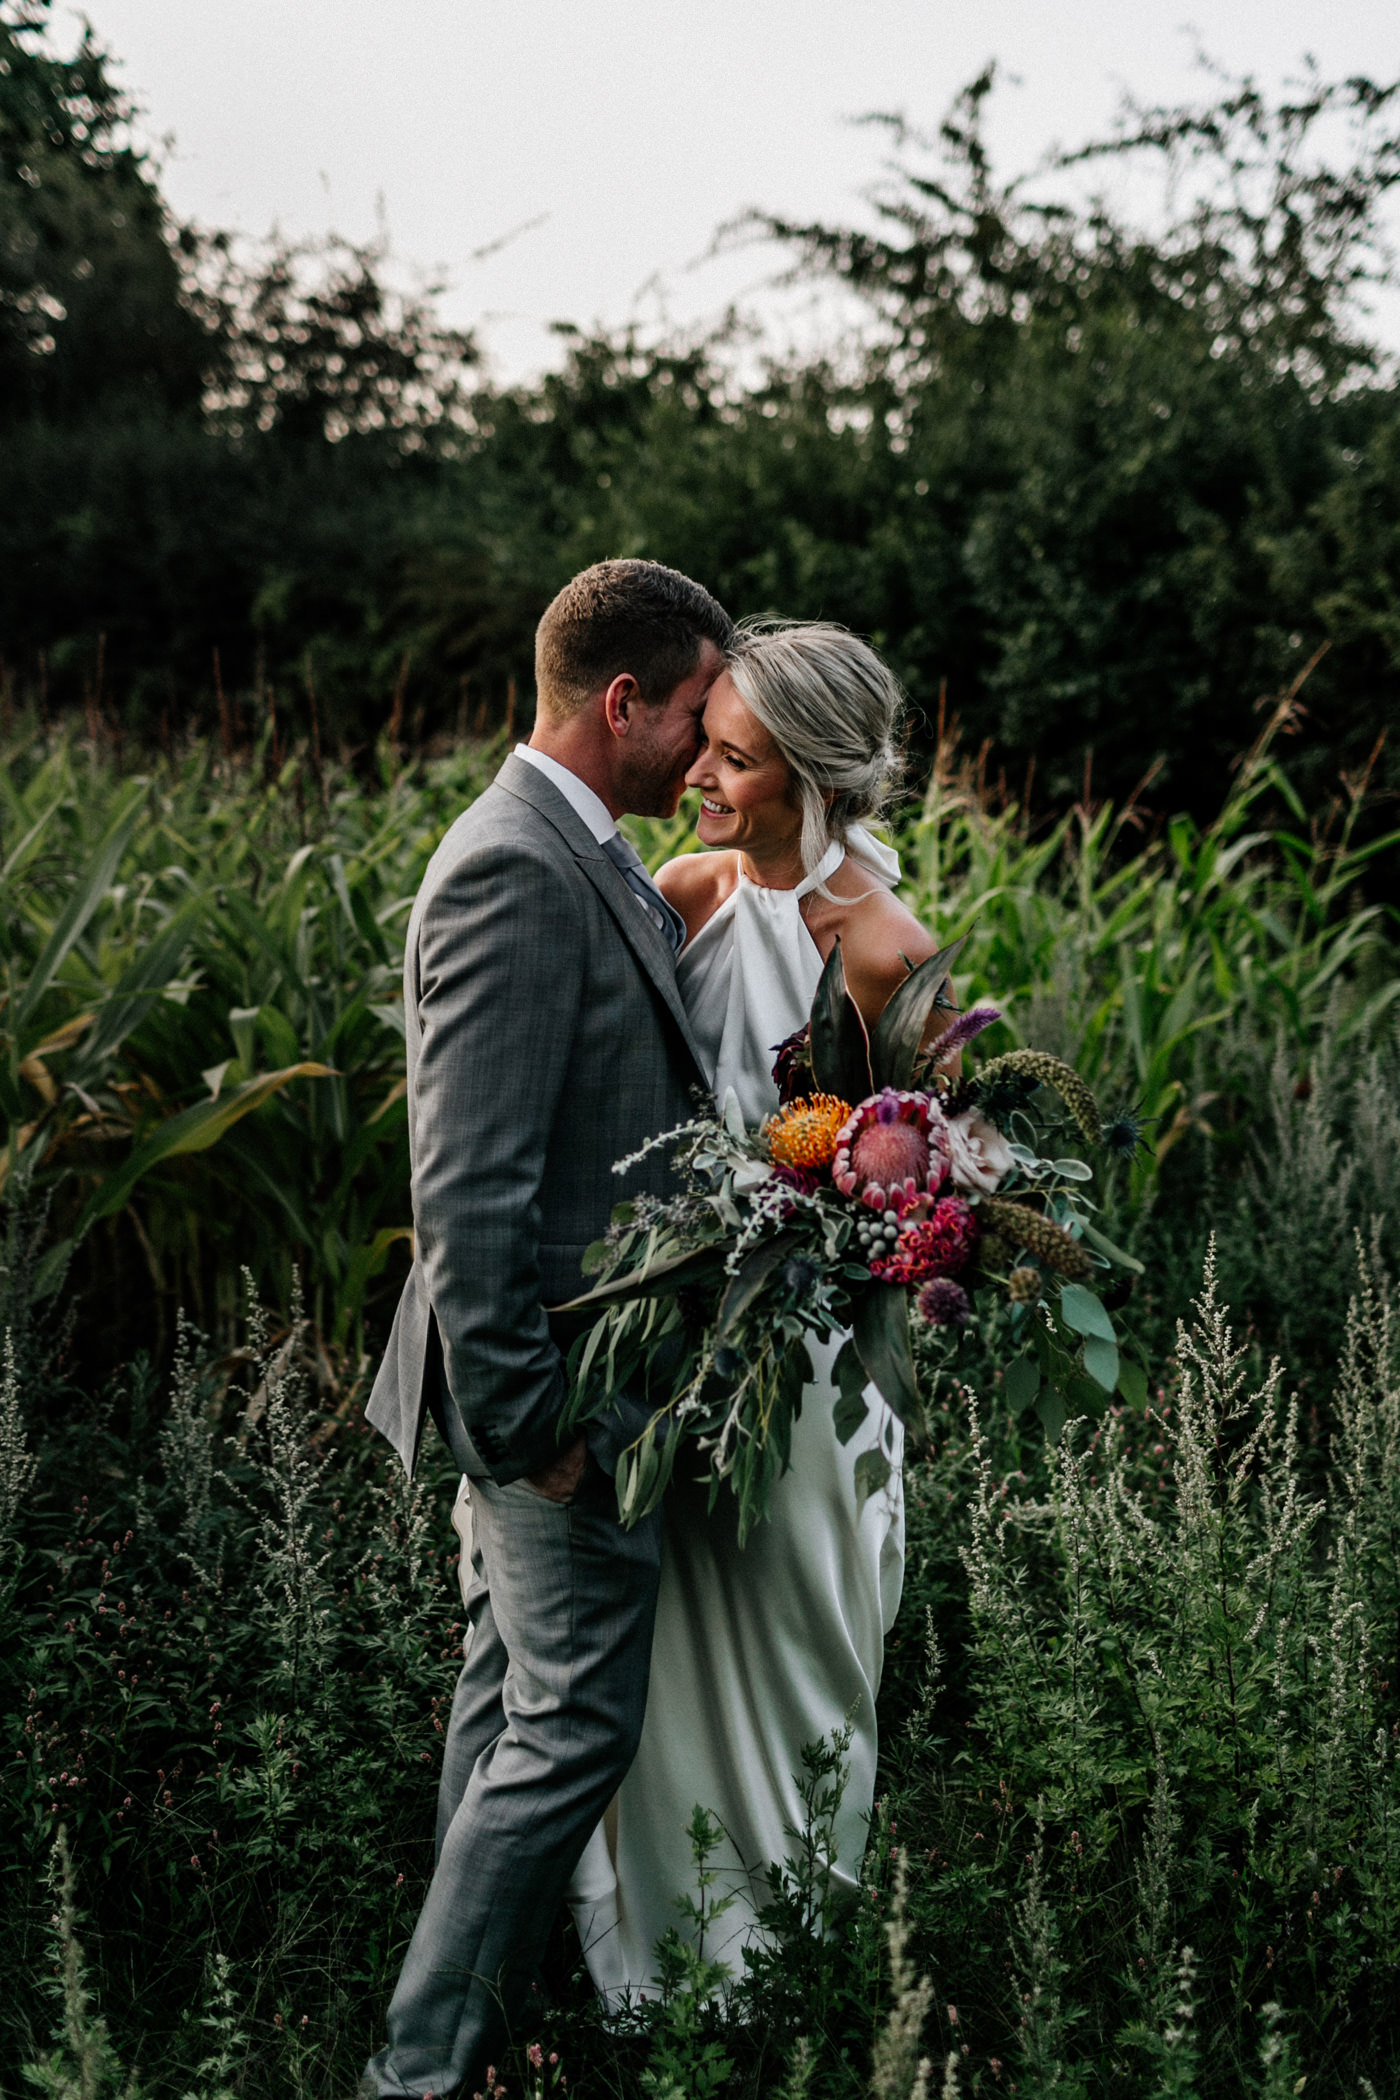 Destination wedding photographer - tuscany, italy